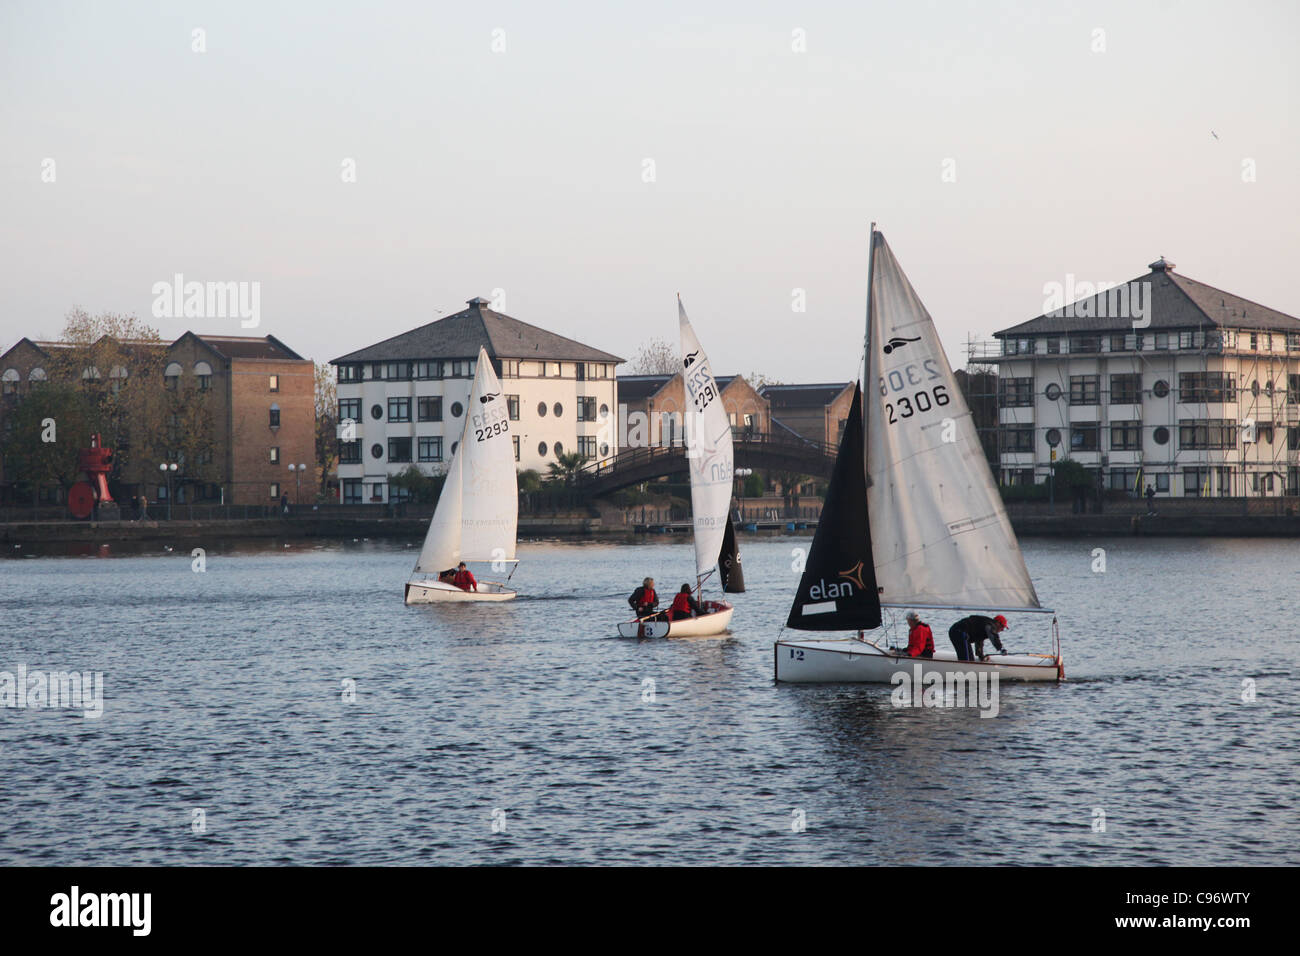 Sailing boats in London's Docklands area - Stock Image